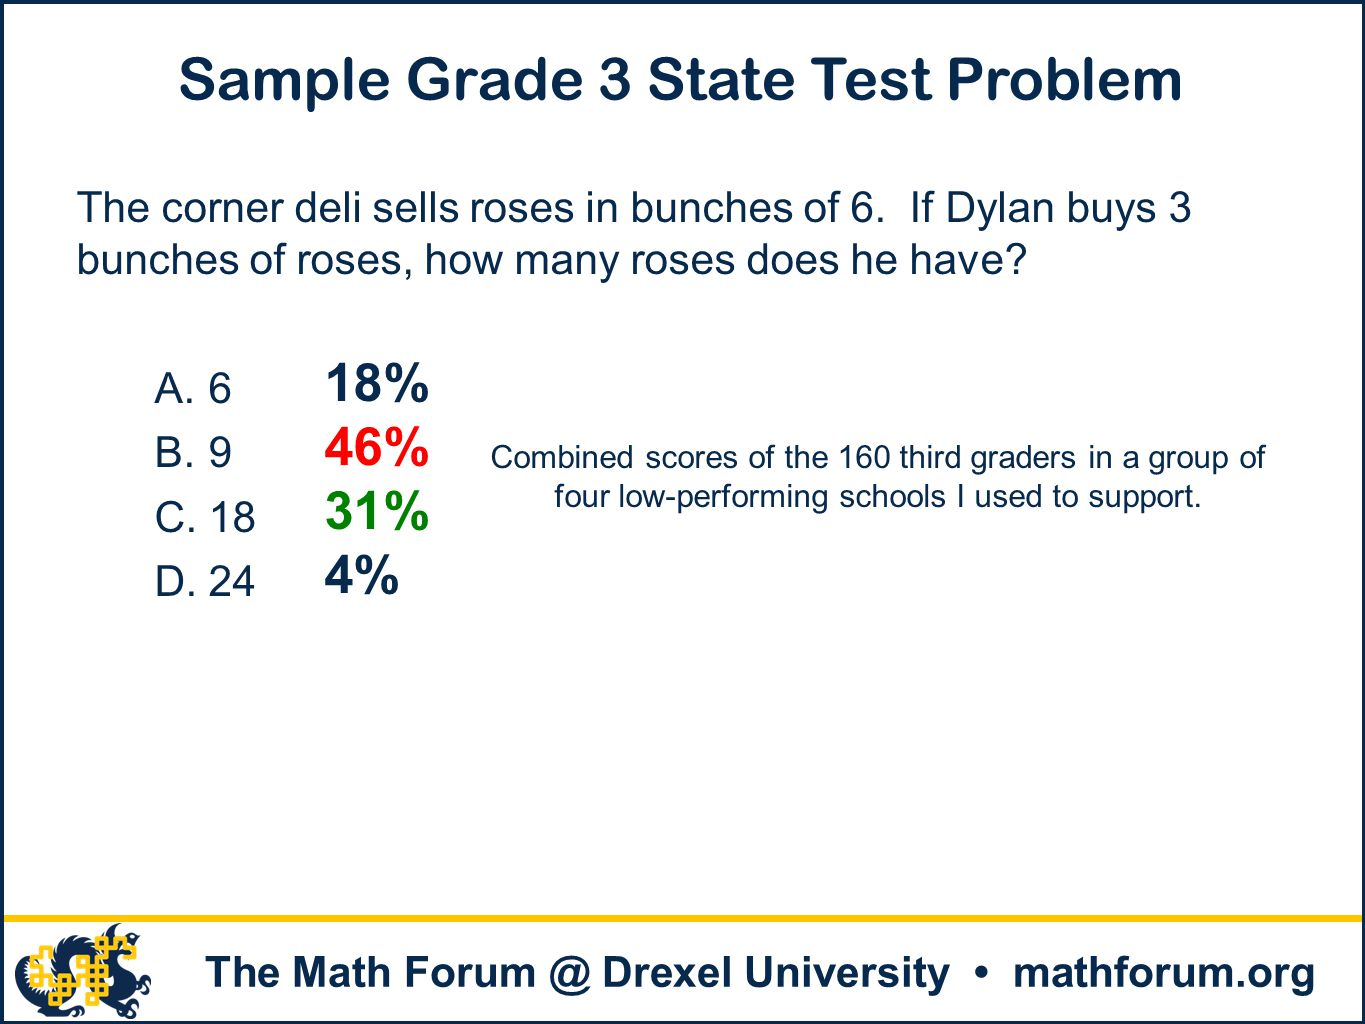 Sample Grade 3 State Test Problem